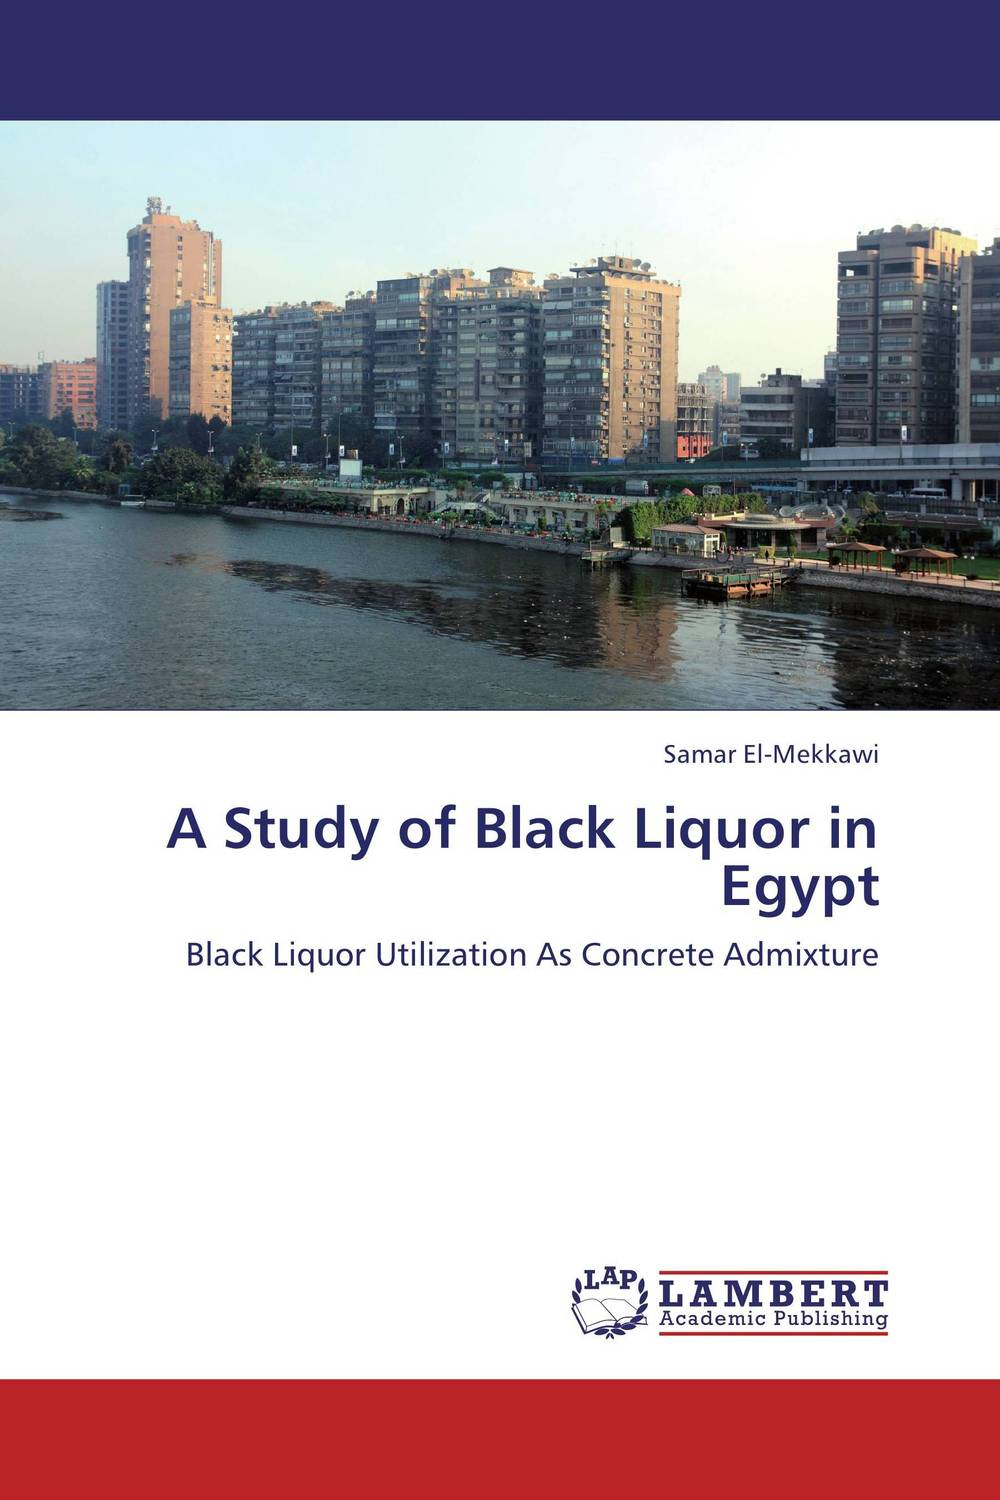 A Study of Black Liquor in Egypt effect of smoking on periodontium